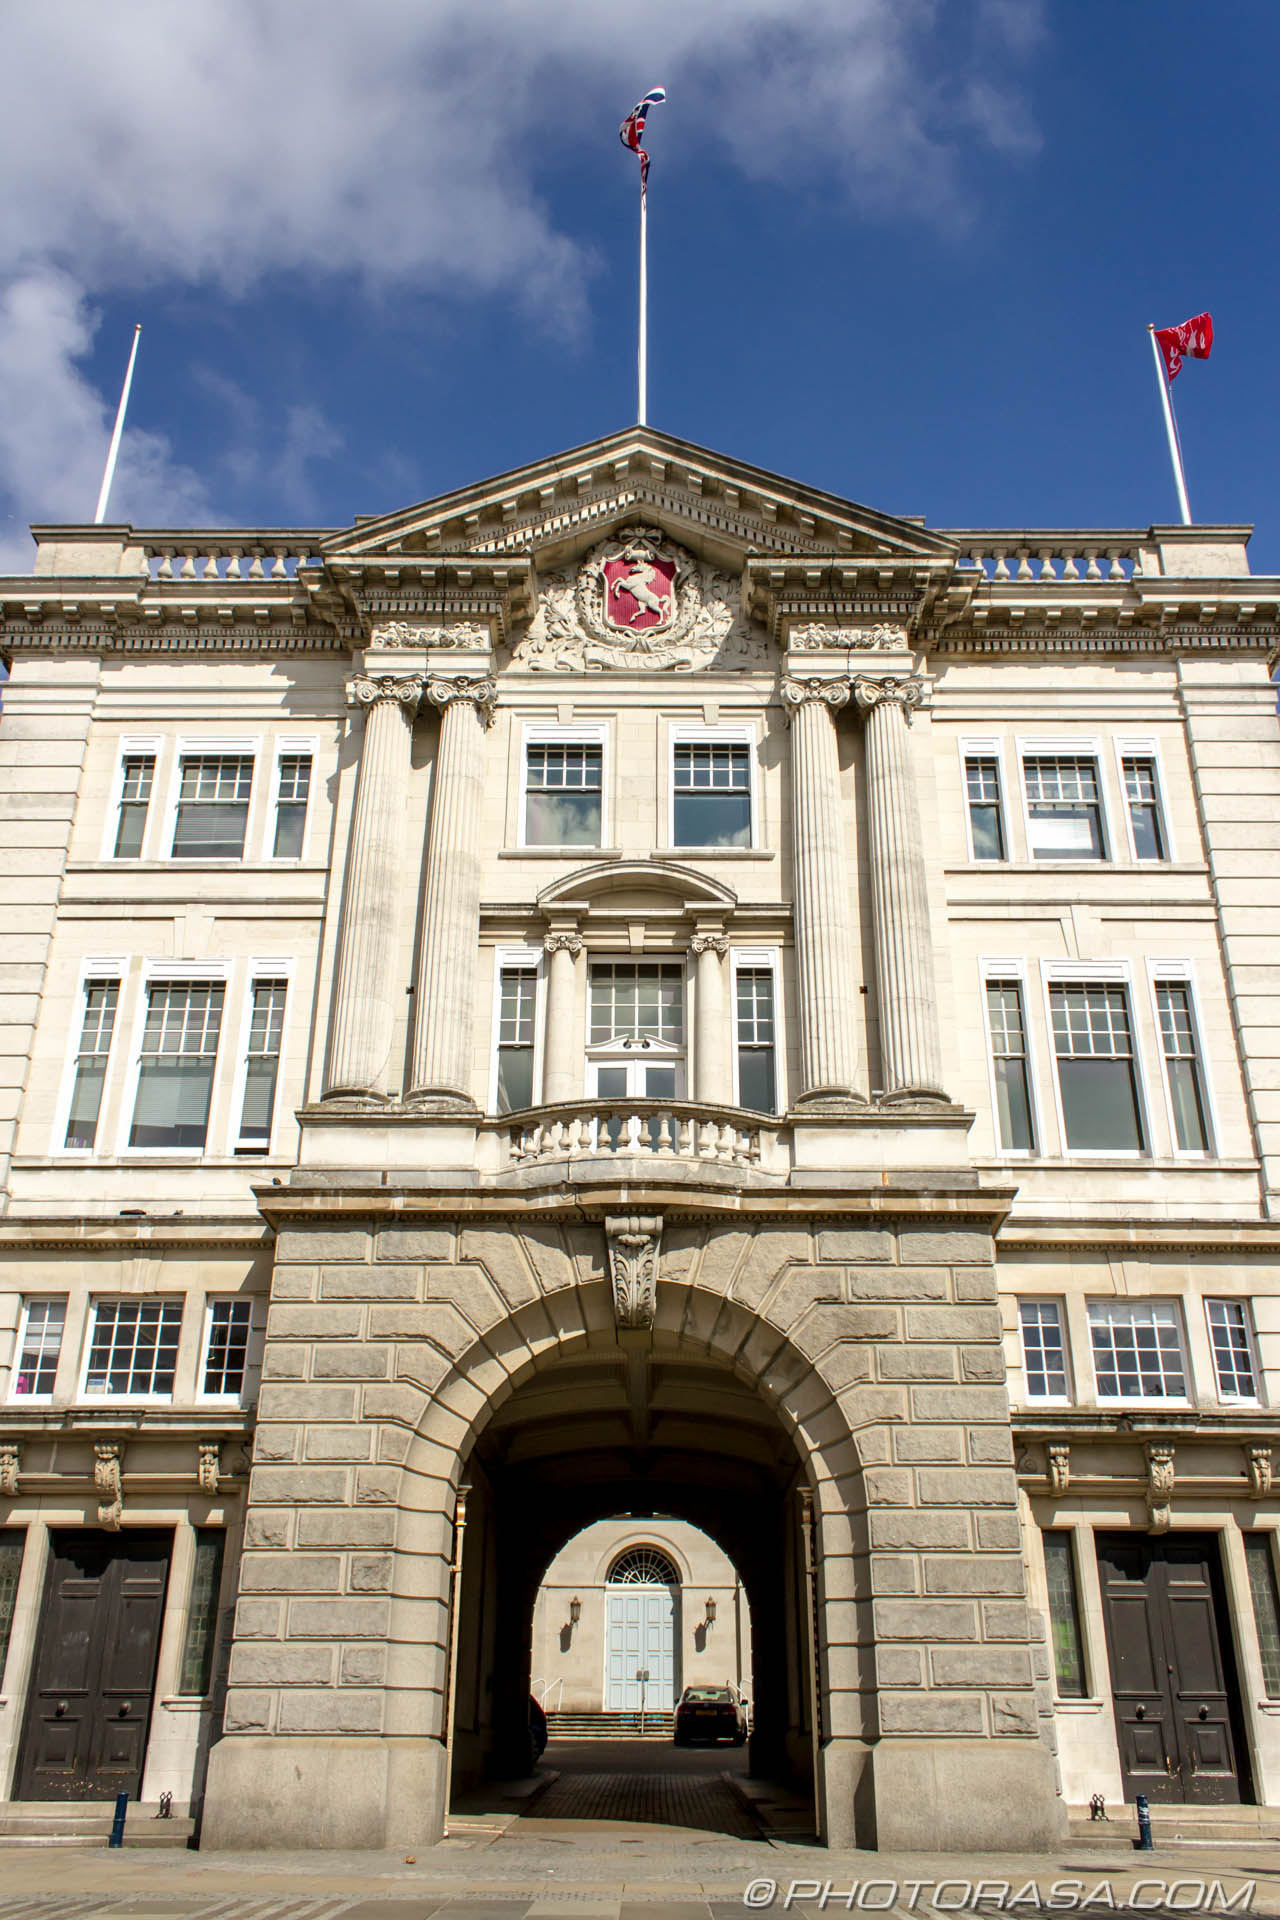 http://photorasa.com/maidstone/maidstone-county-hall/